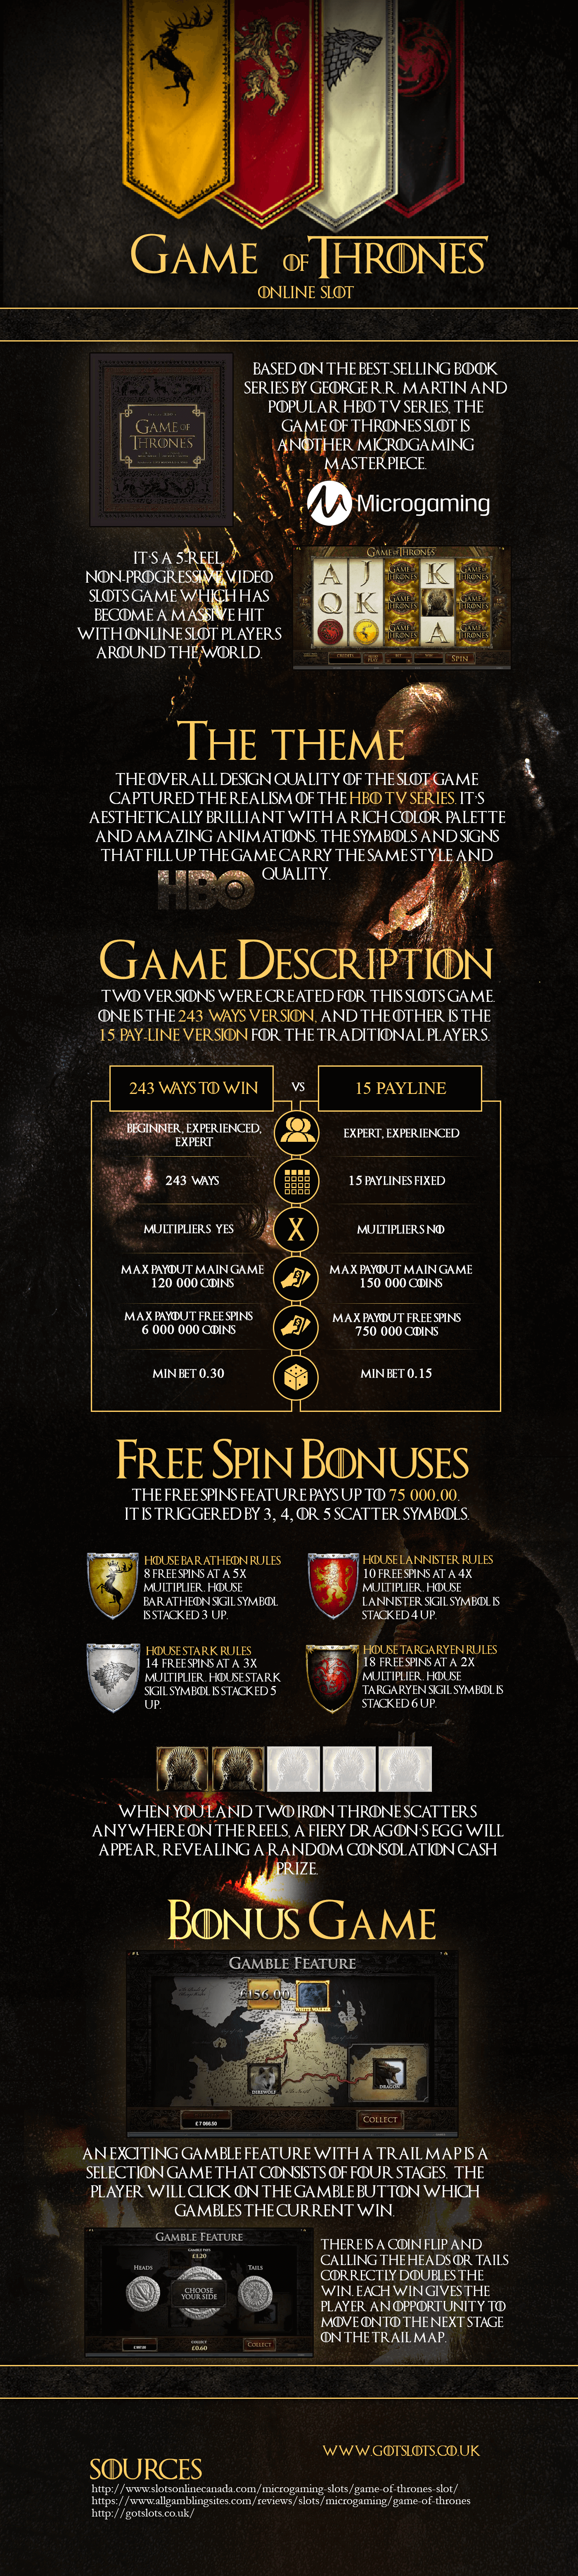 Game of Thrones Slot Guide